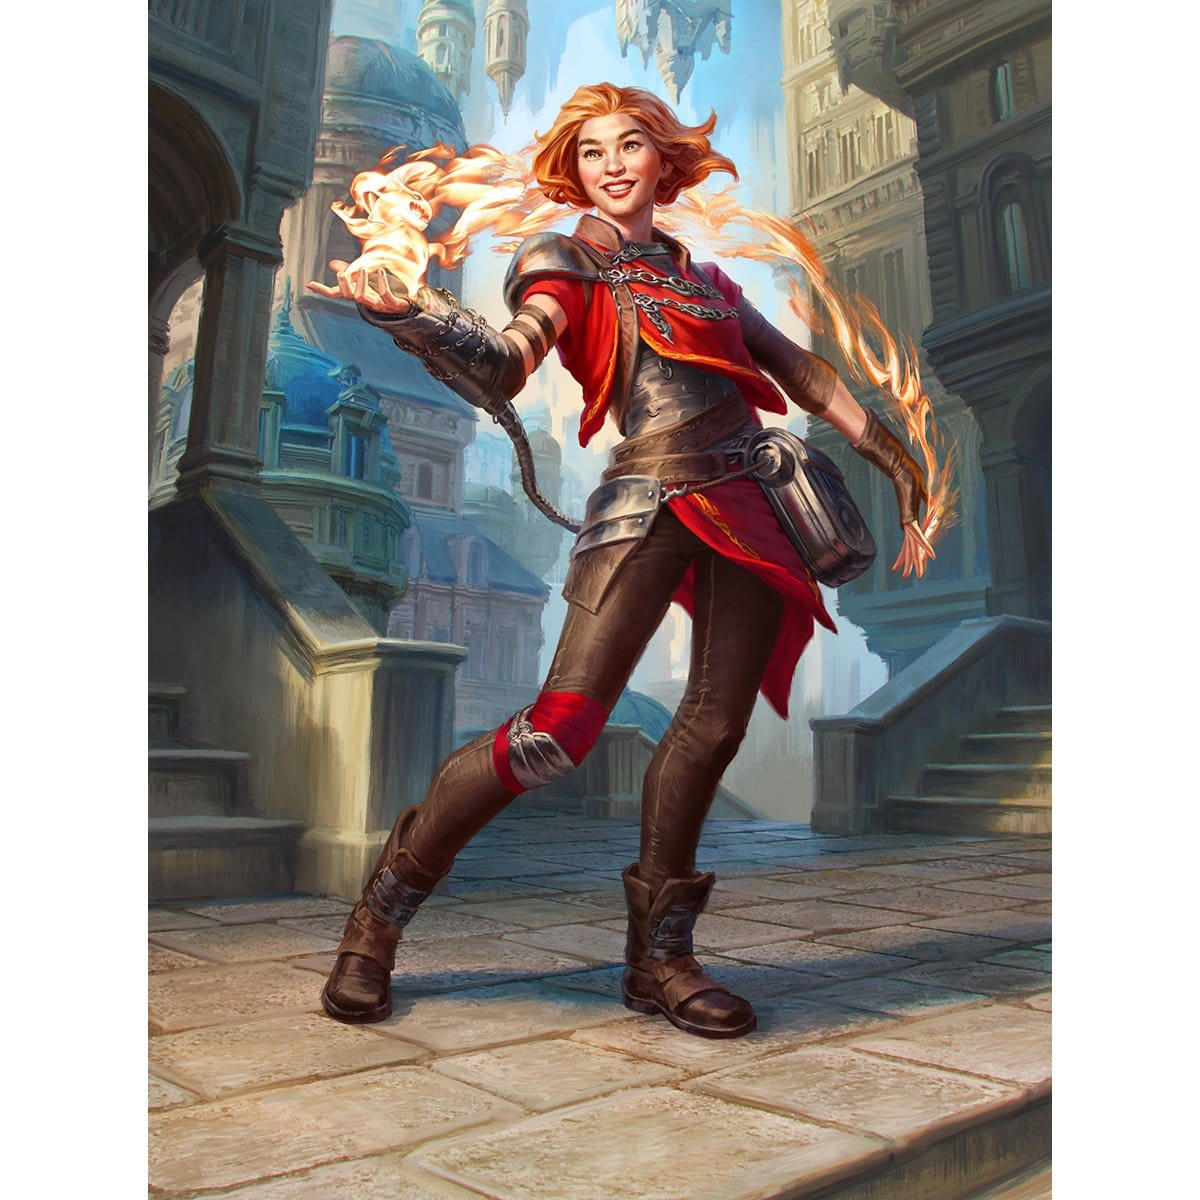 Chandra, Novice Pyromancer Print - Print - Original Magic Art - Accessories for Magic the Gathering and other card games